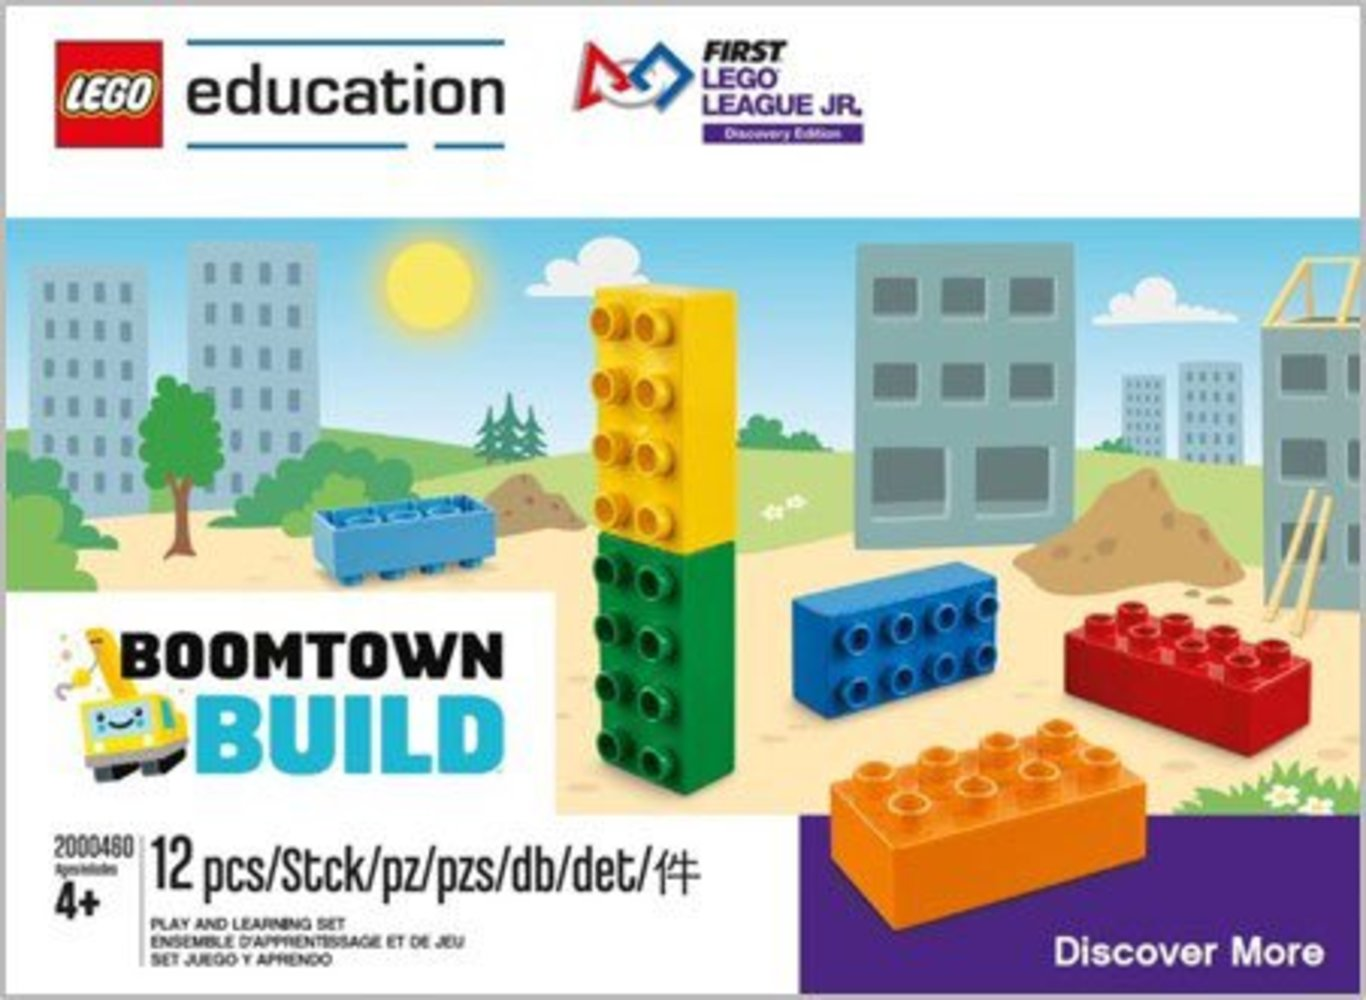 Boomtown Build Discover More